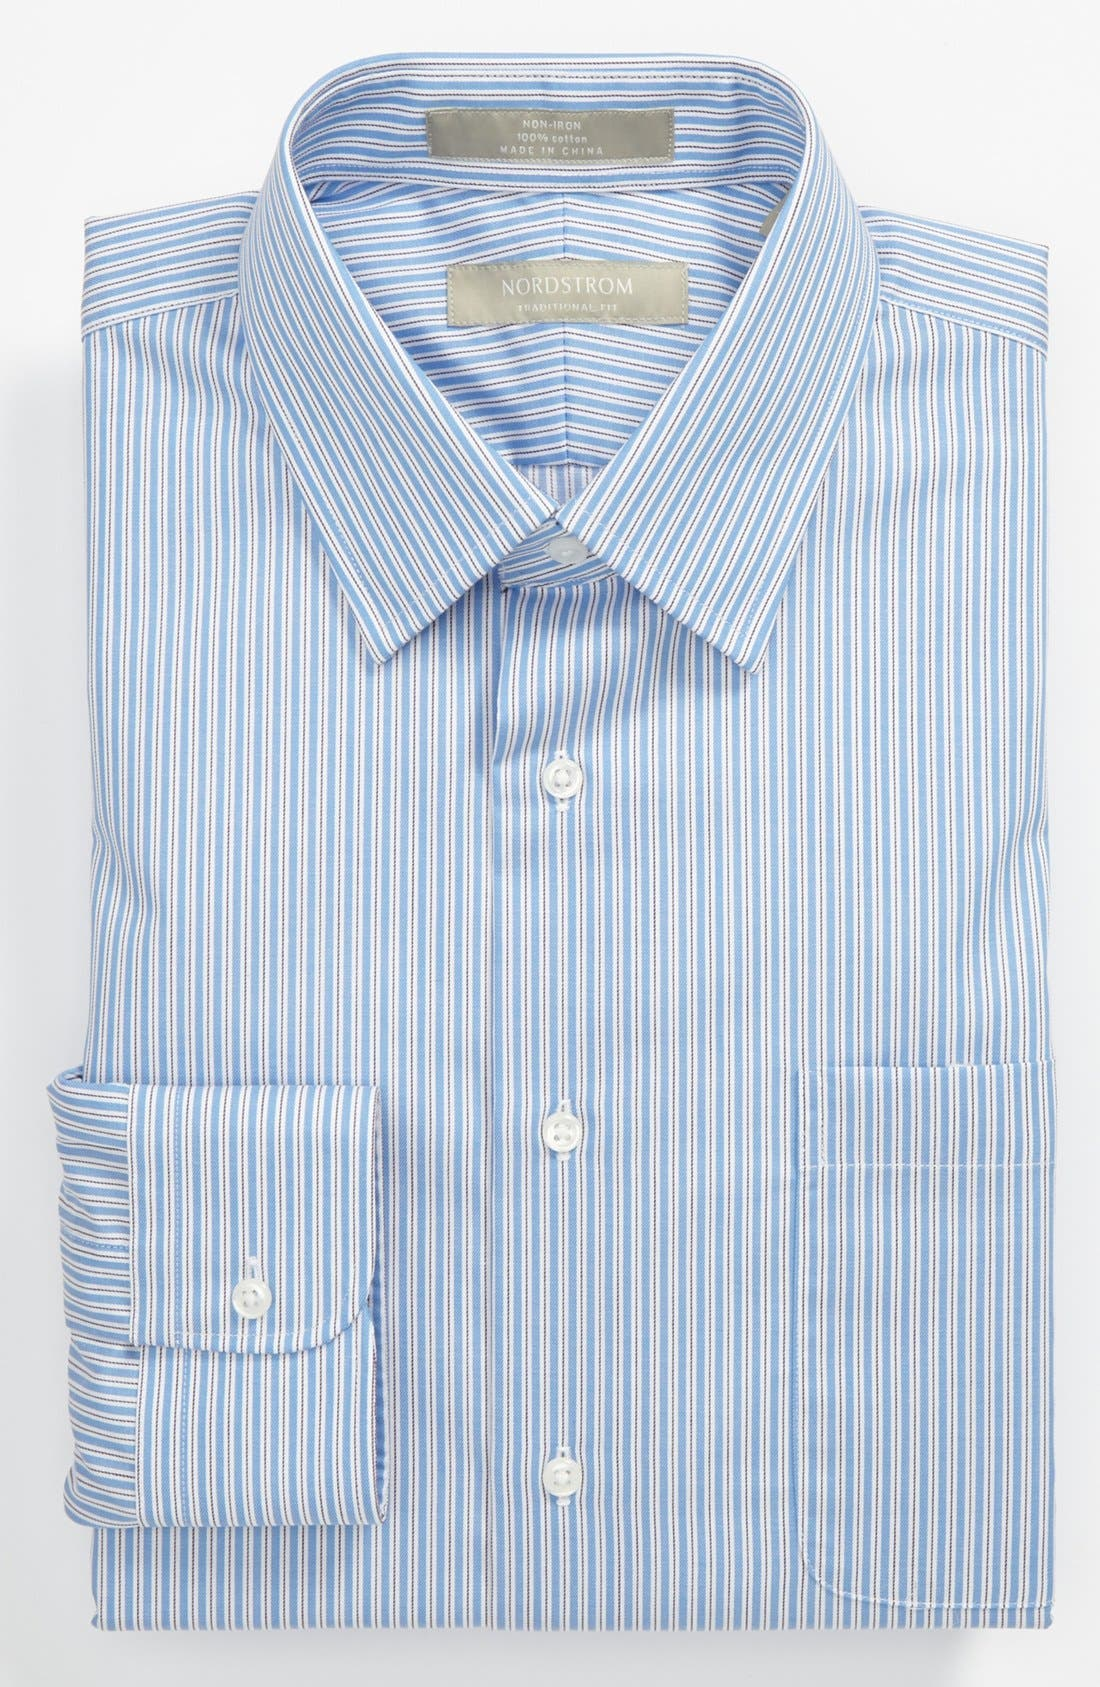 Main Image - Nordstrom Traditional Fit Dress Shirt